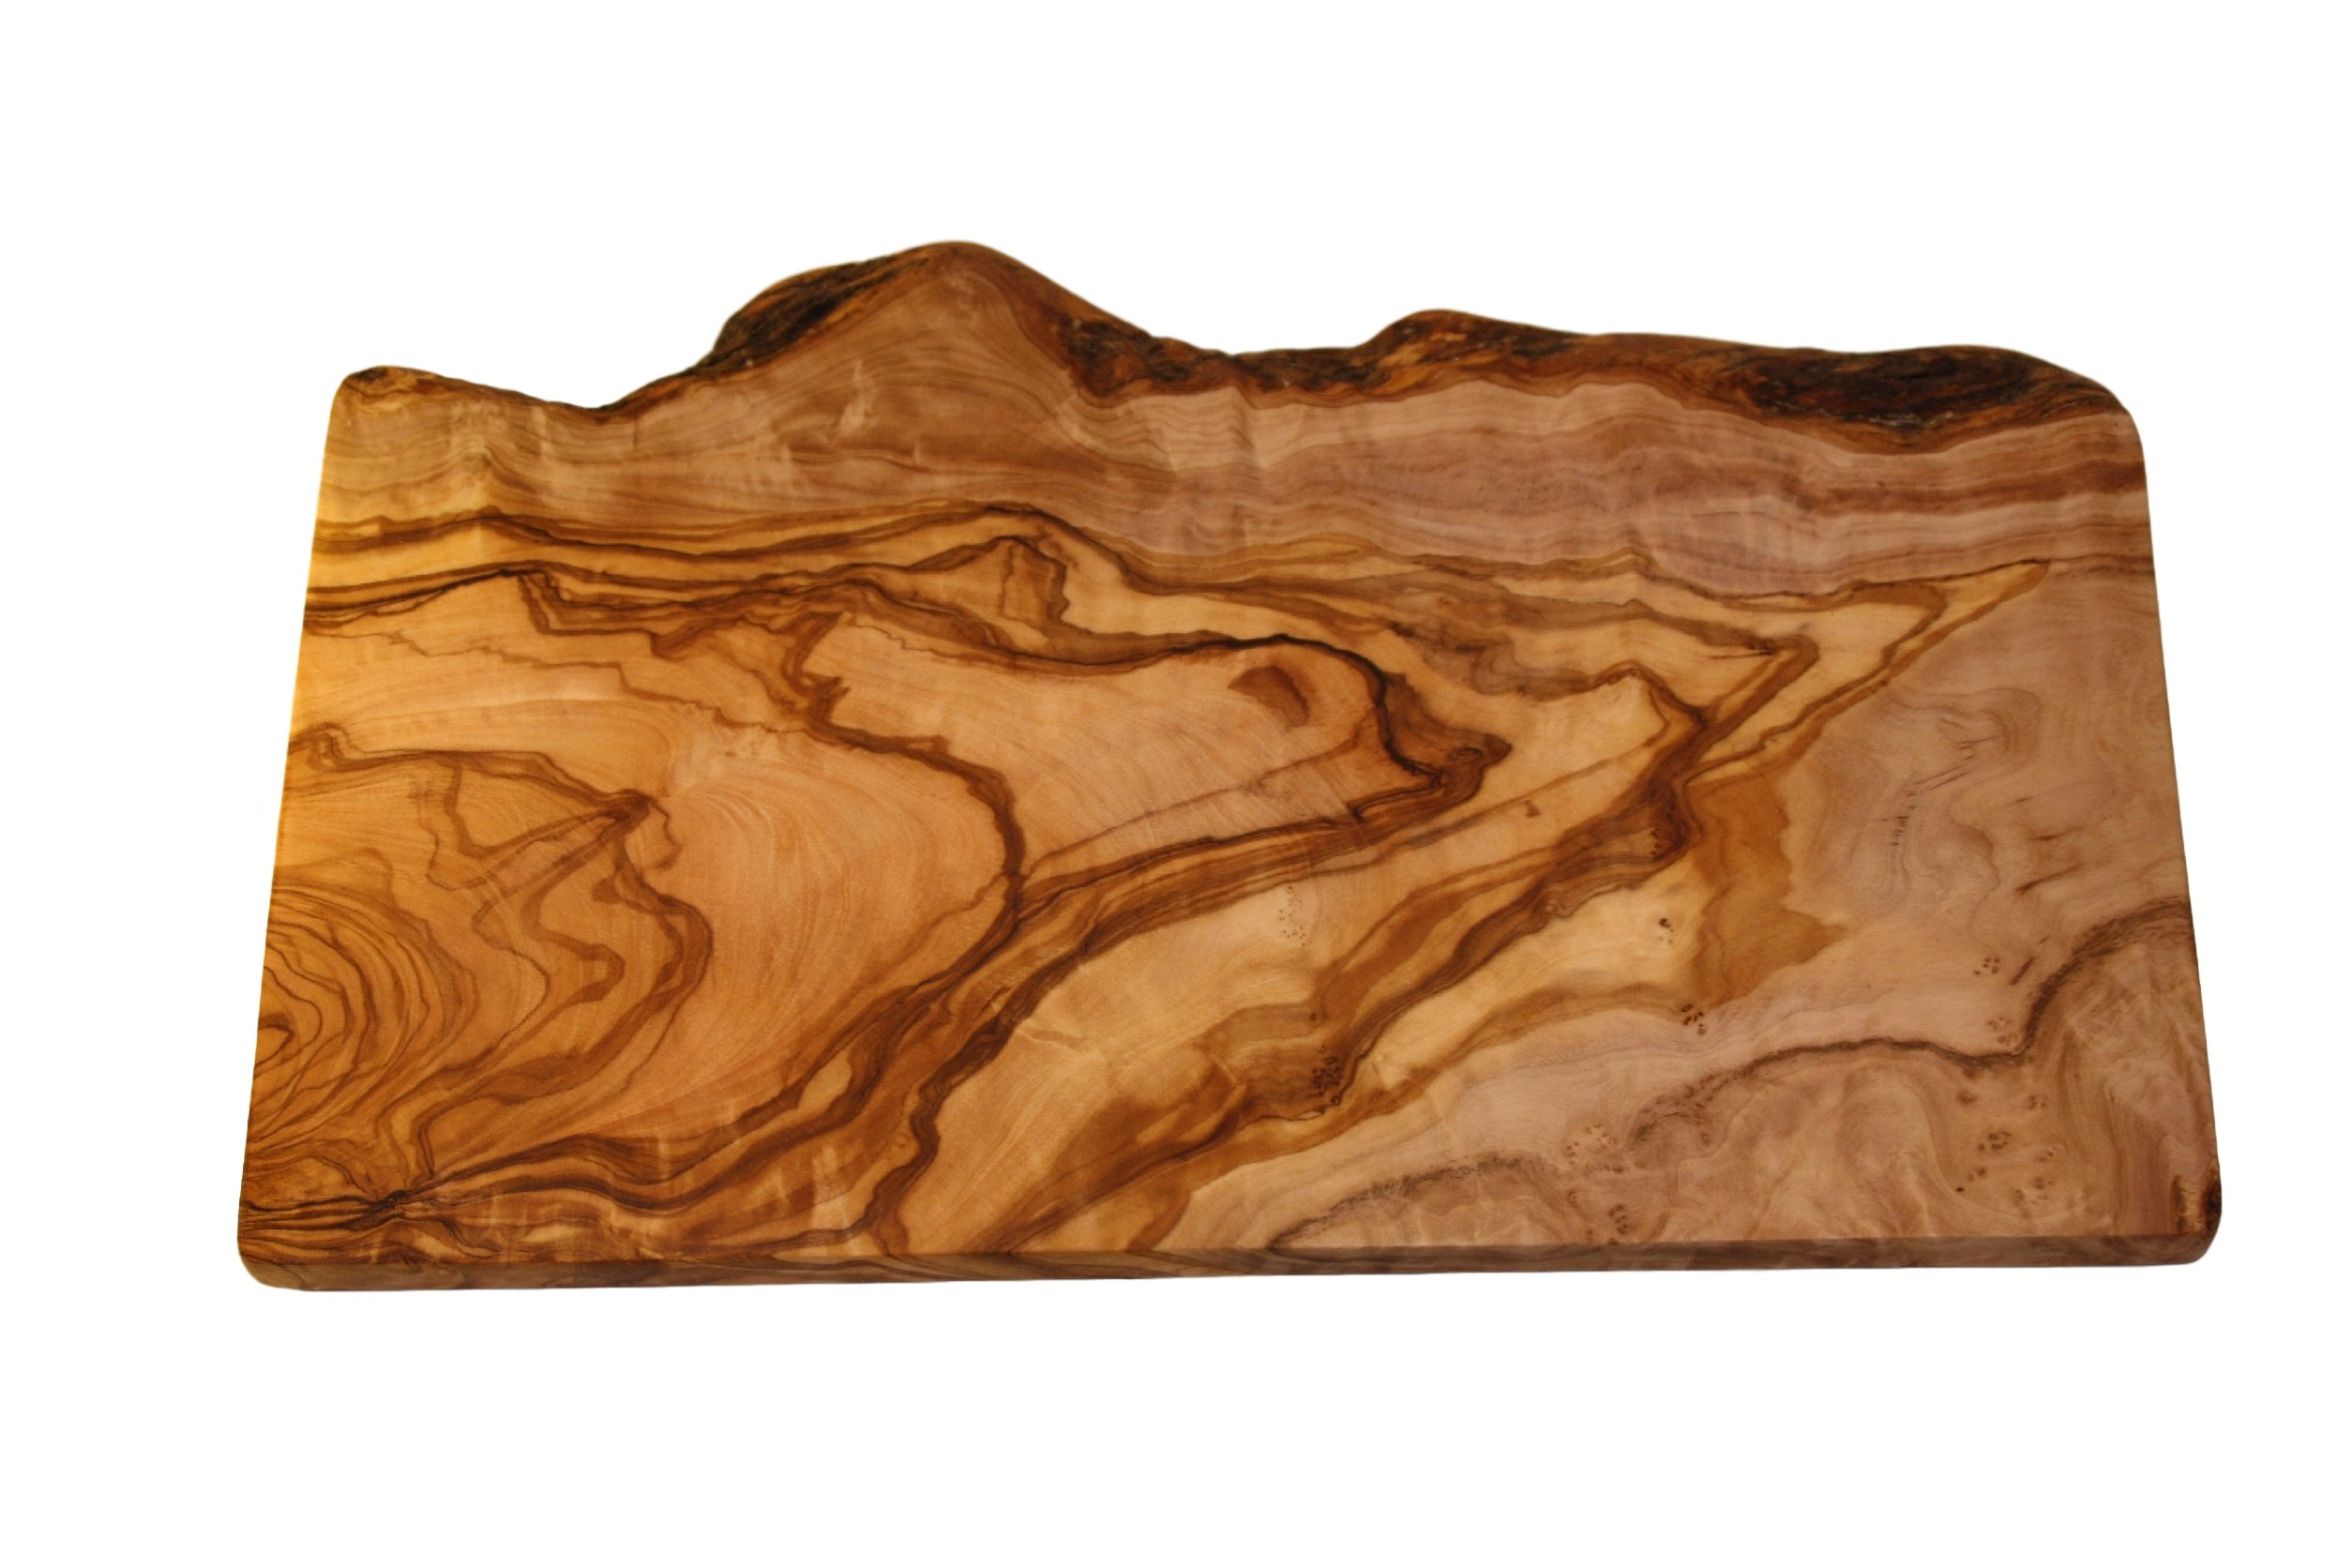 Cucina Priolo - Unique Natural Handcrafted Olive Wood Rustic Cutting Board by Cucina Priolo